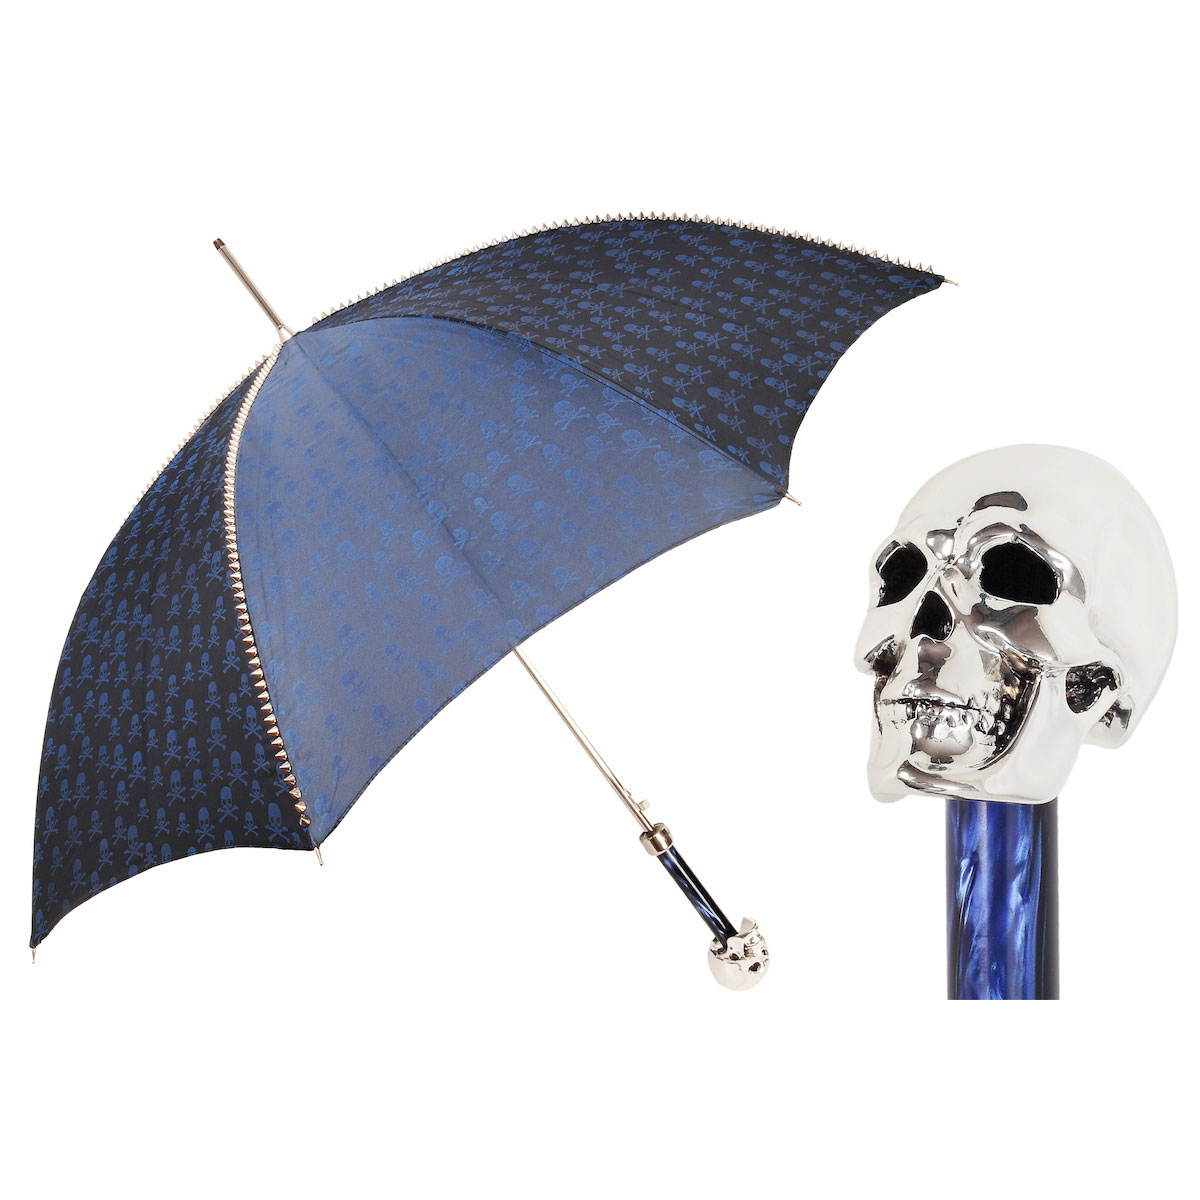 Pasotti Ombrelli Navy Umbrella with Studs - Silver Skull Handle